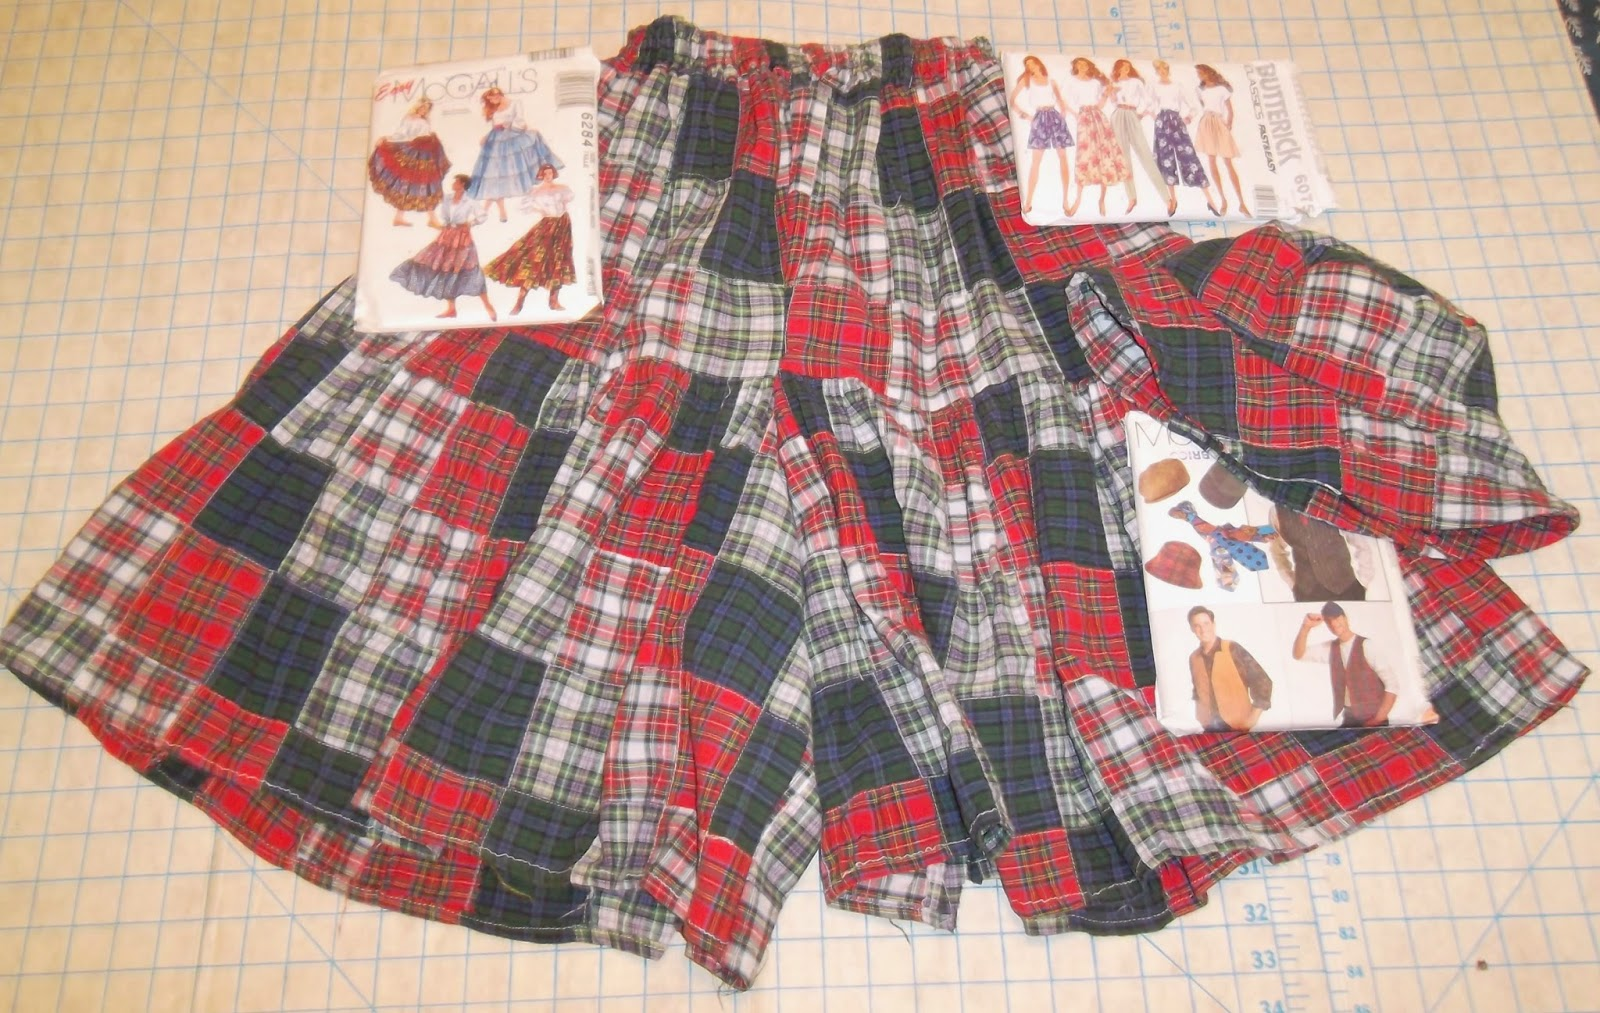 Woman's divided skirt and hat, made from fabric that consists of piecework squares in four plaid designs: dark red, blue and green, red on white and blue and green on white.  In upper left, a sewing pattern for a three-paneled long skirt is laid on top of the garment. In upper right, a pattern for the divided skirt. And in lower right, a sewing pattern for the hat.